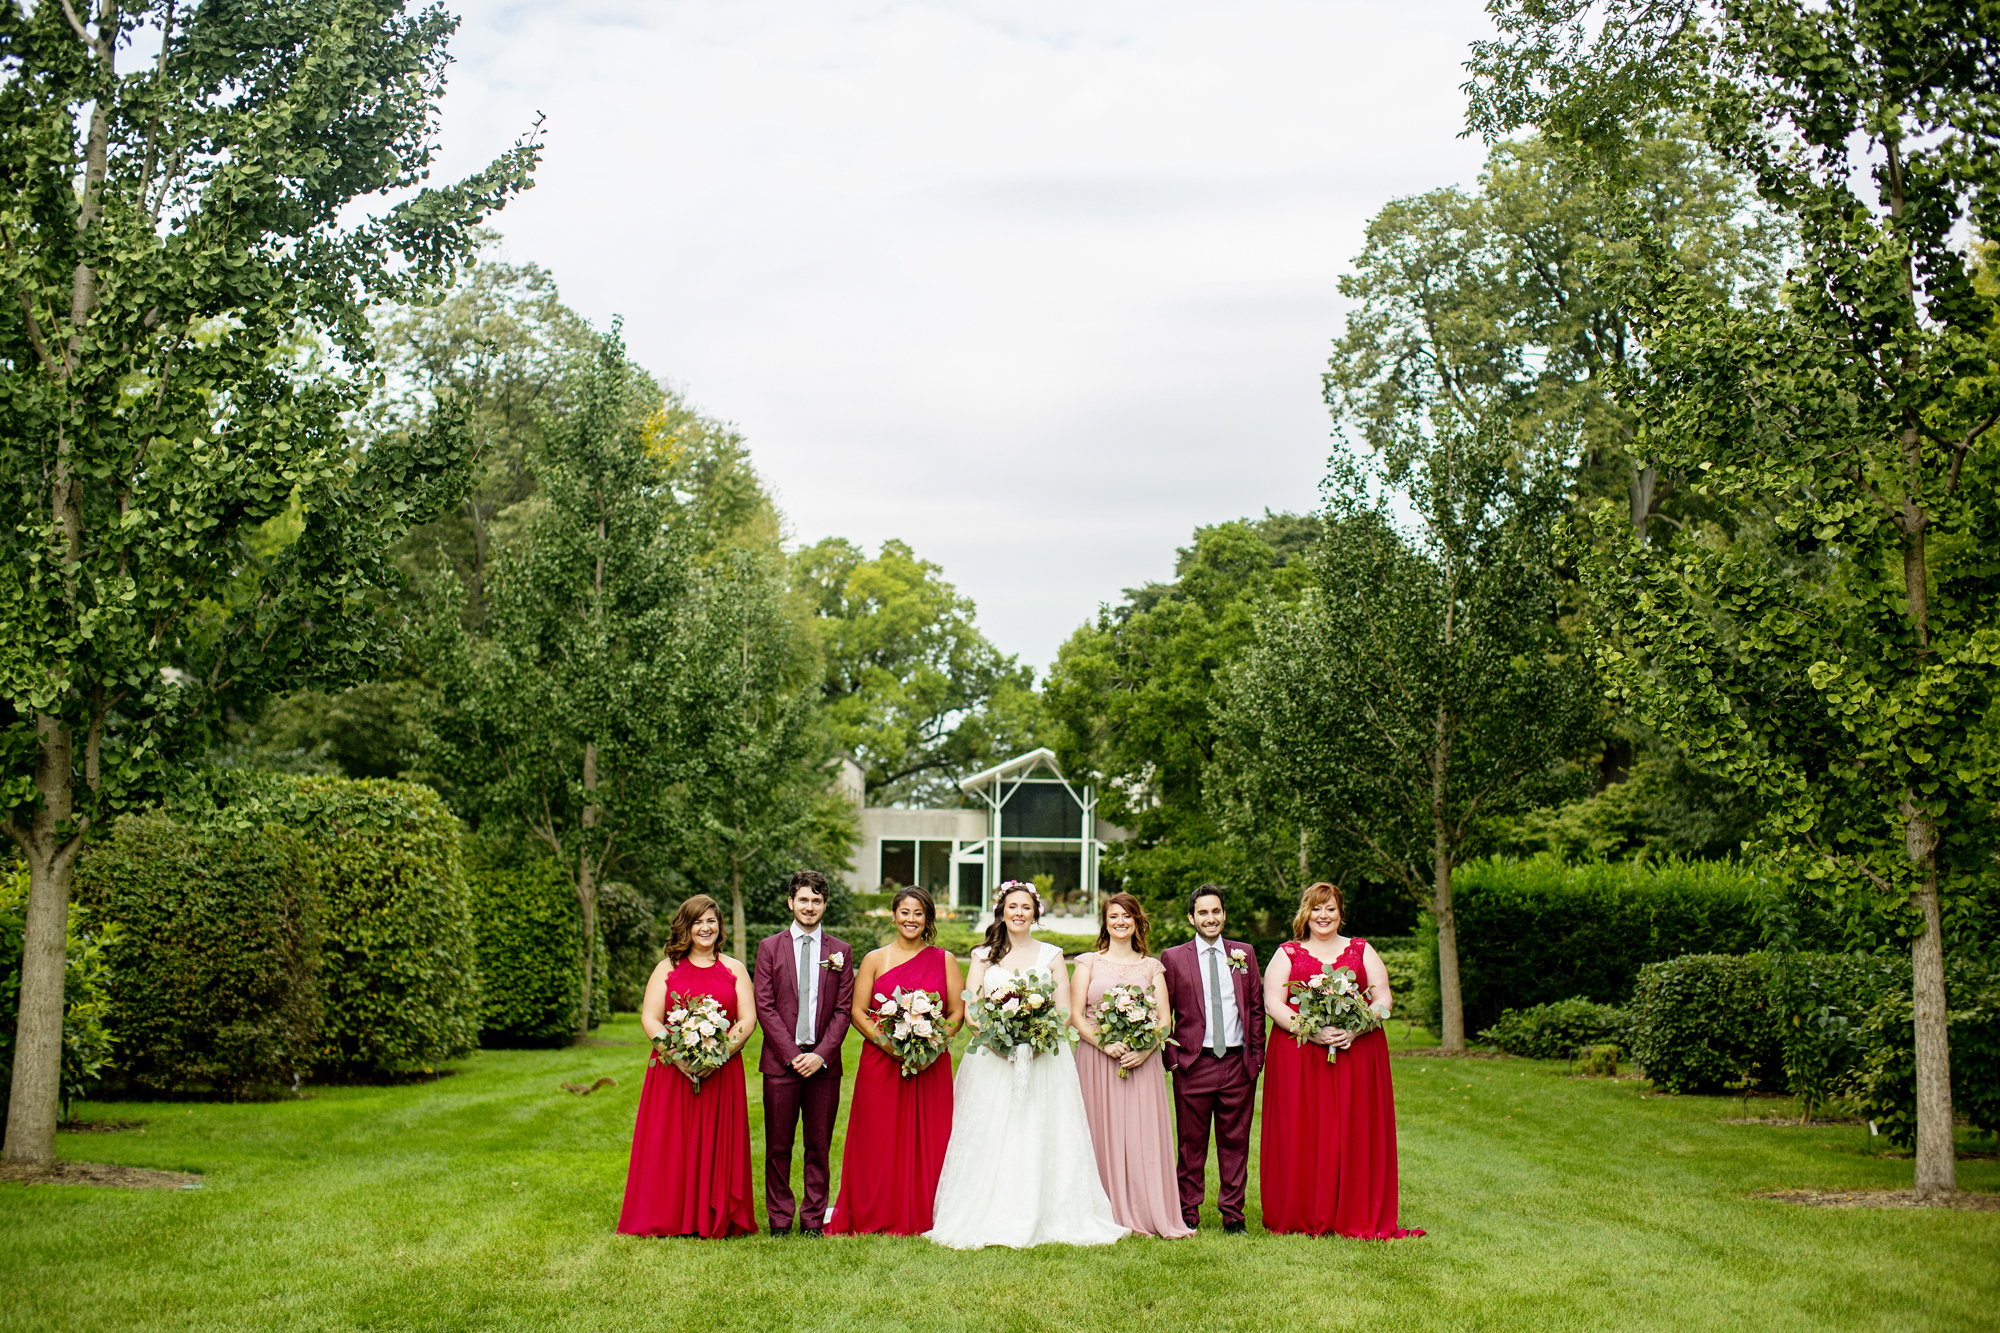 Seriously_Sabrina_Photography_Lisle_Illinois_Morton_Arboretum_Wedding_Day_Gowen38.jpg